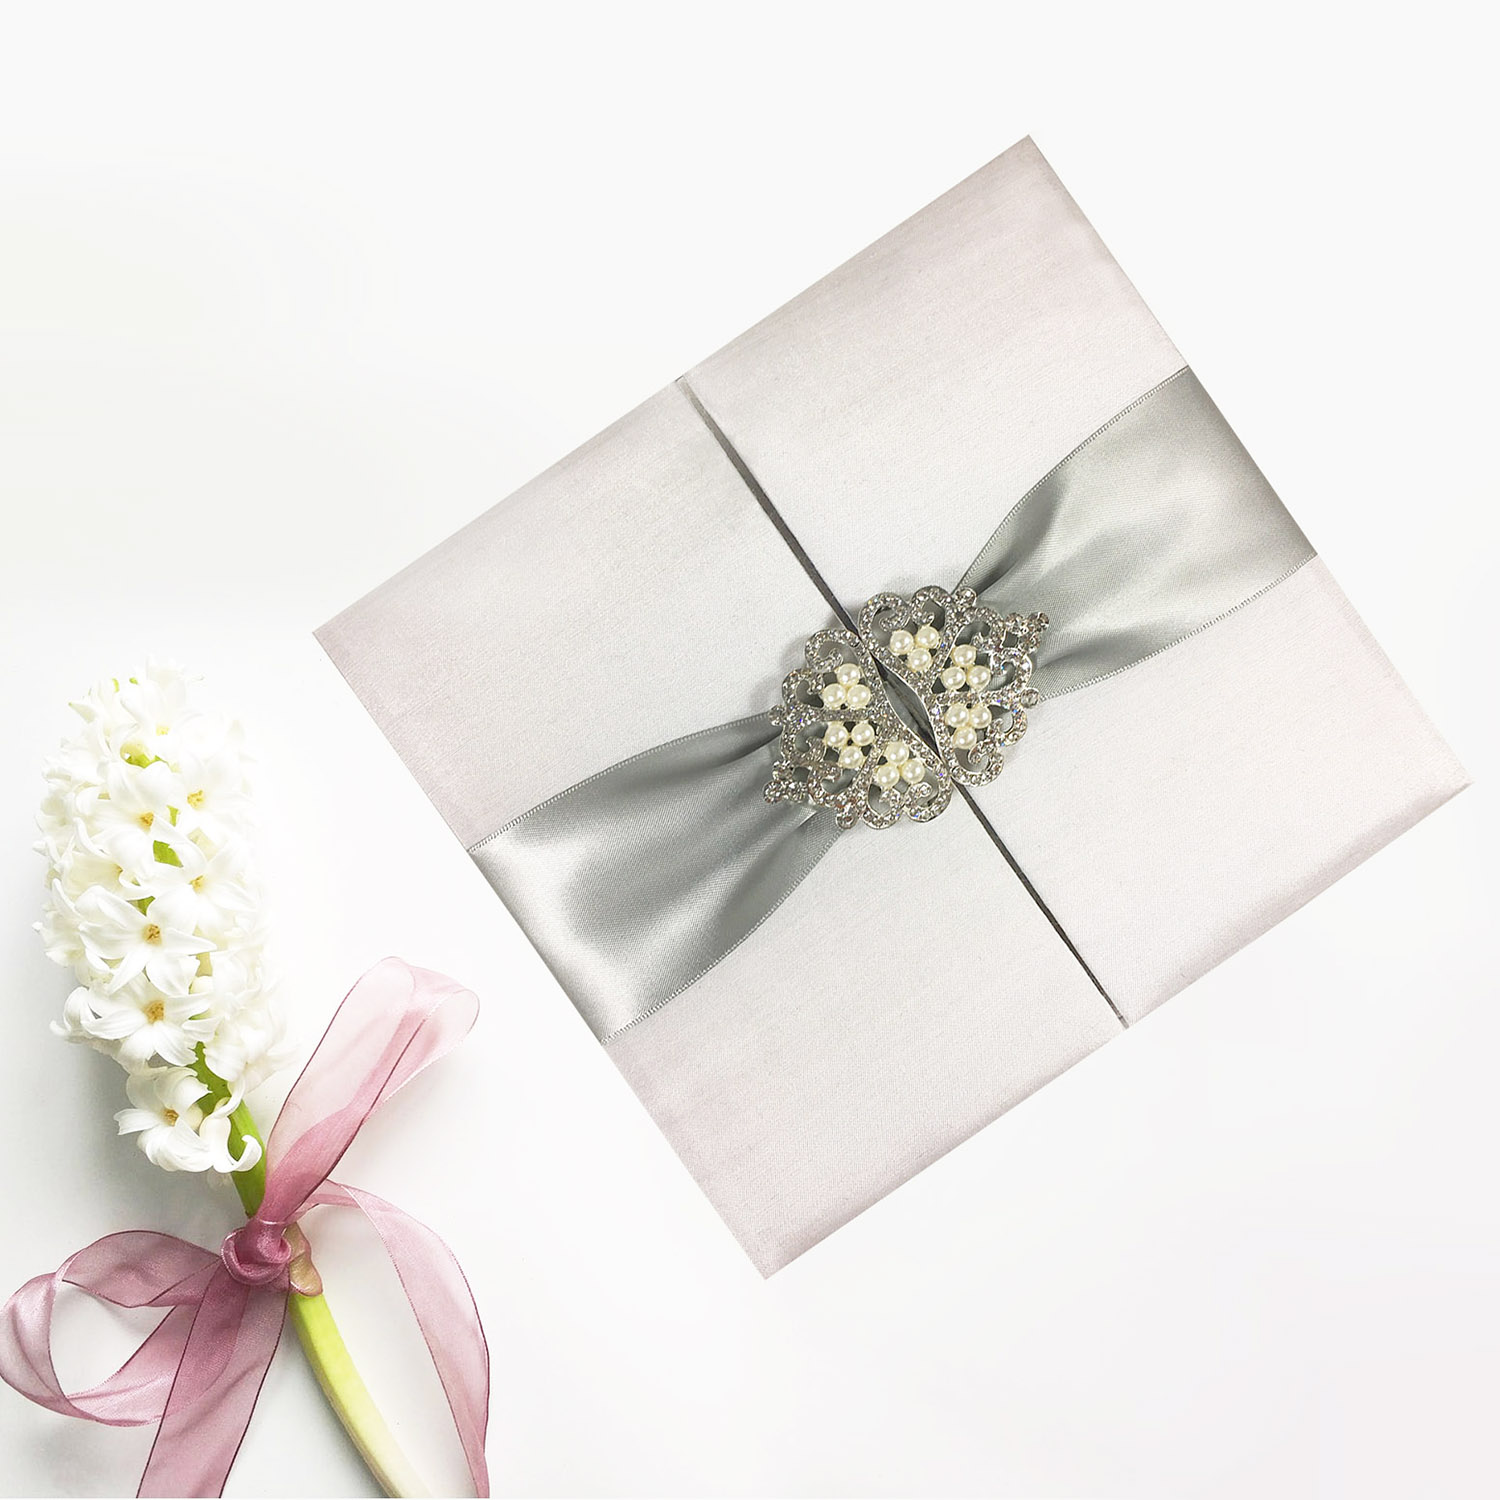 Luxury white & silver wedding invitation